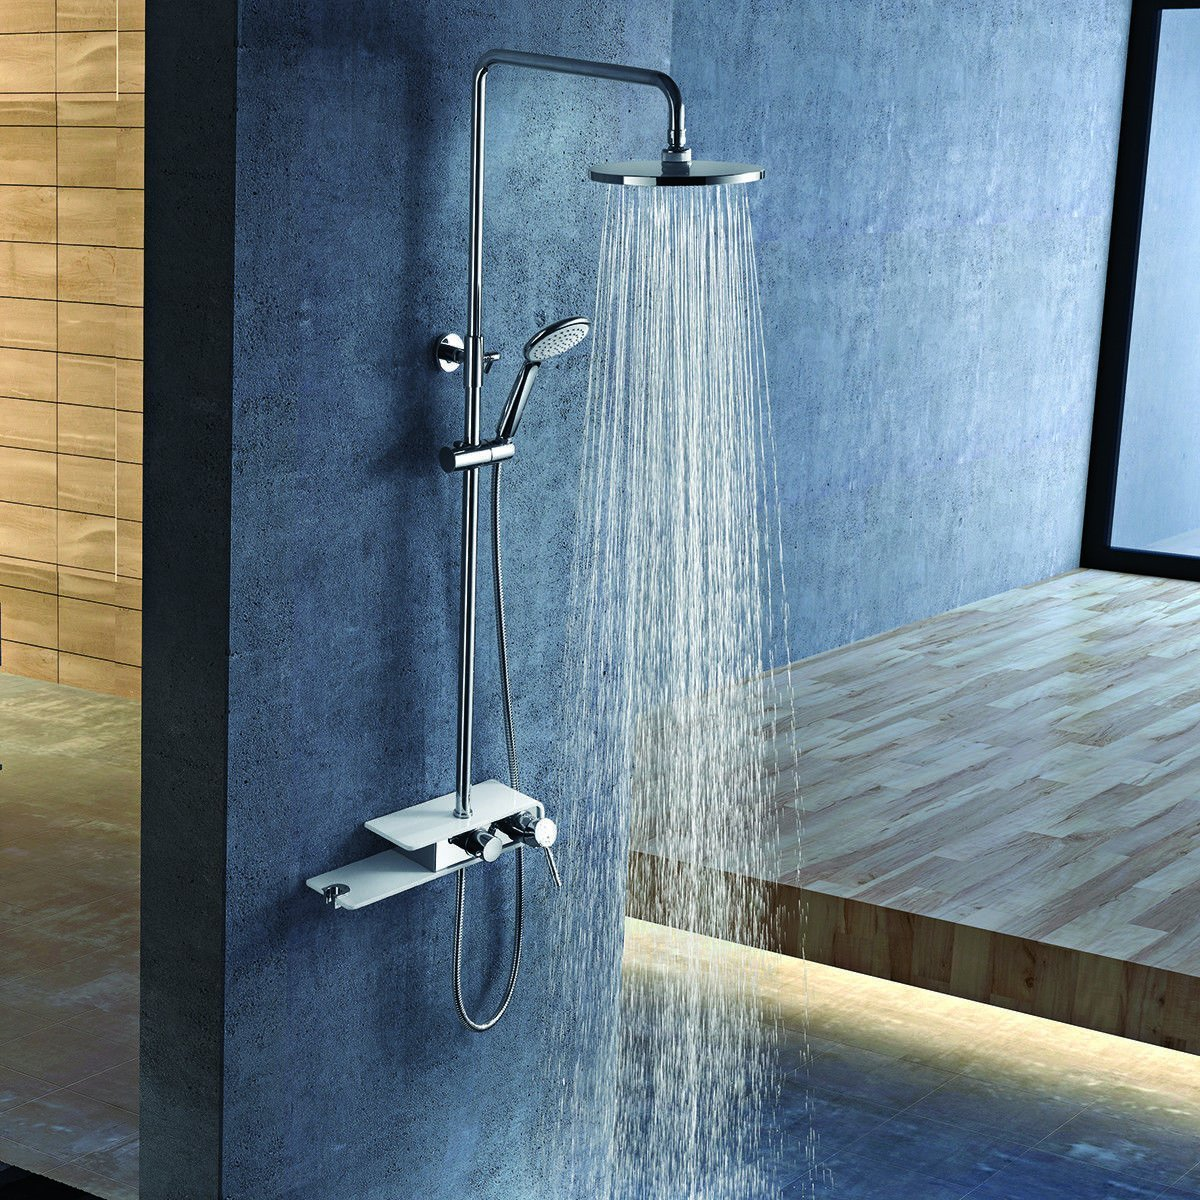 Awesome The Arc Shower Rod Image - Bathtub Ideas - dilata.info